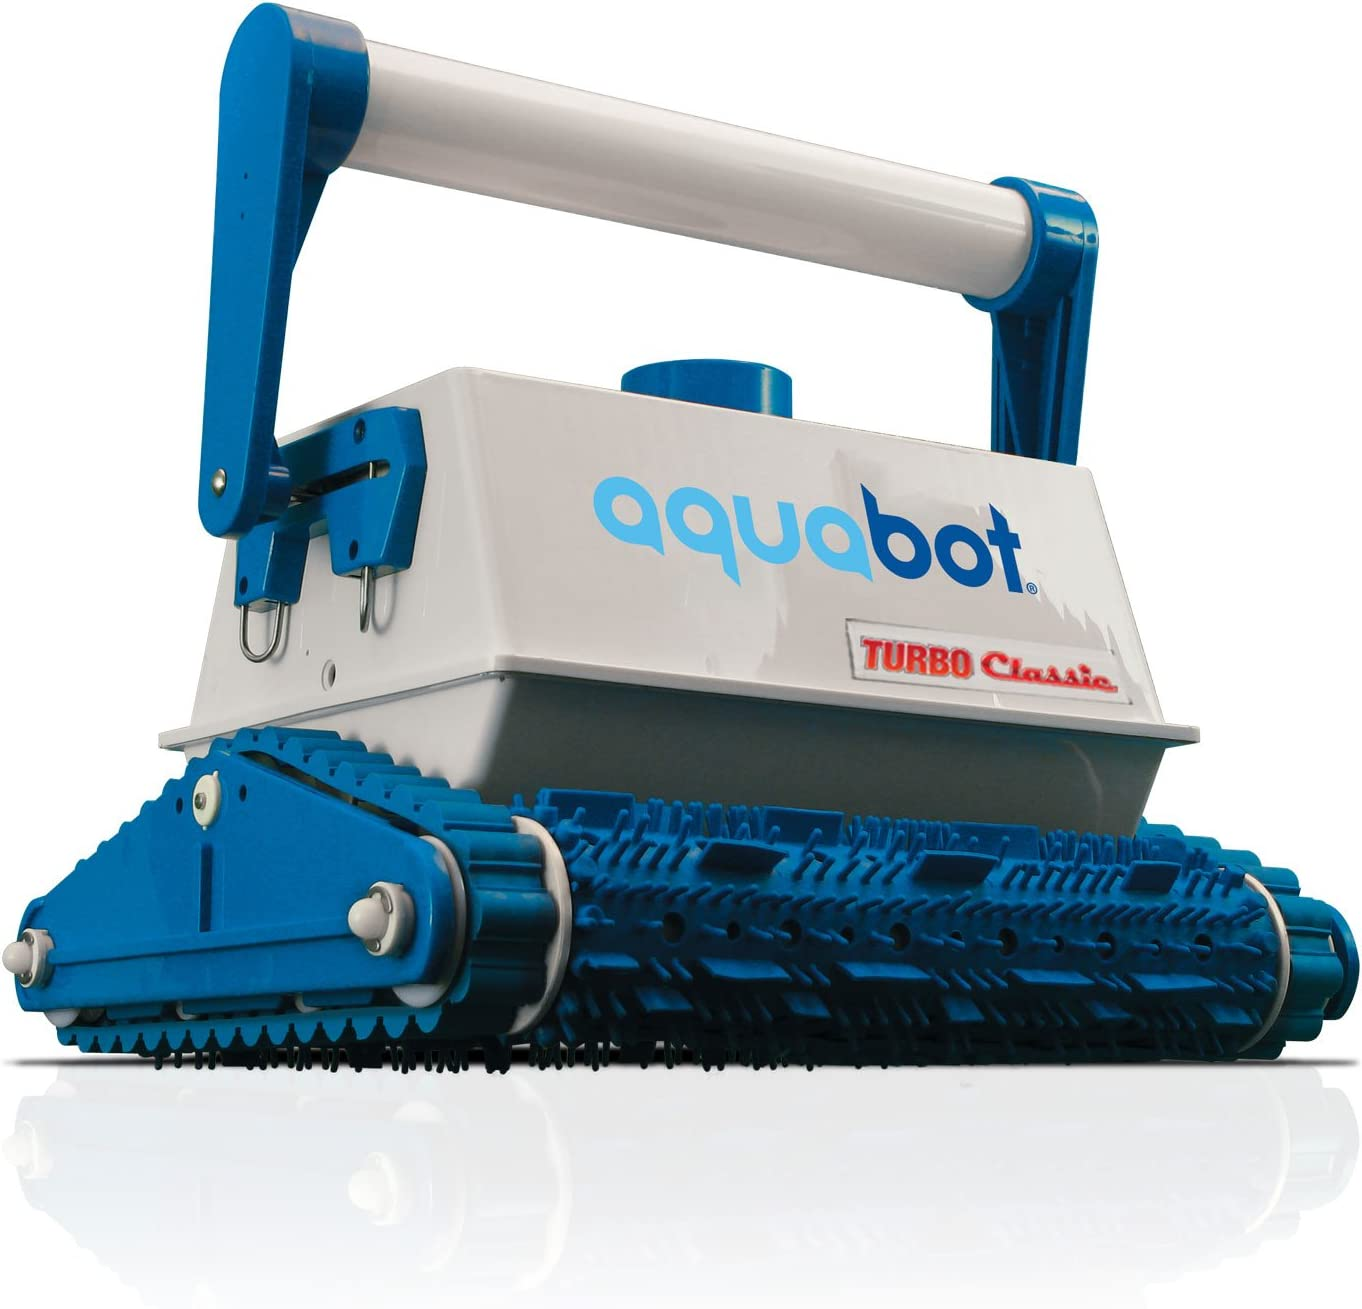 AquaBot Turbo Classic ABT In-Ground Robotic Pool Cleaner